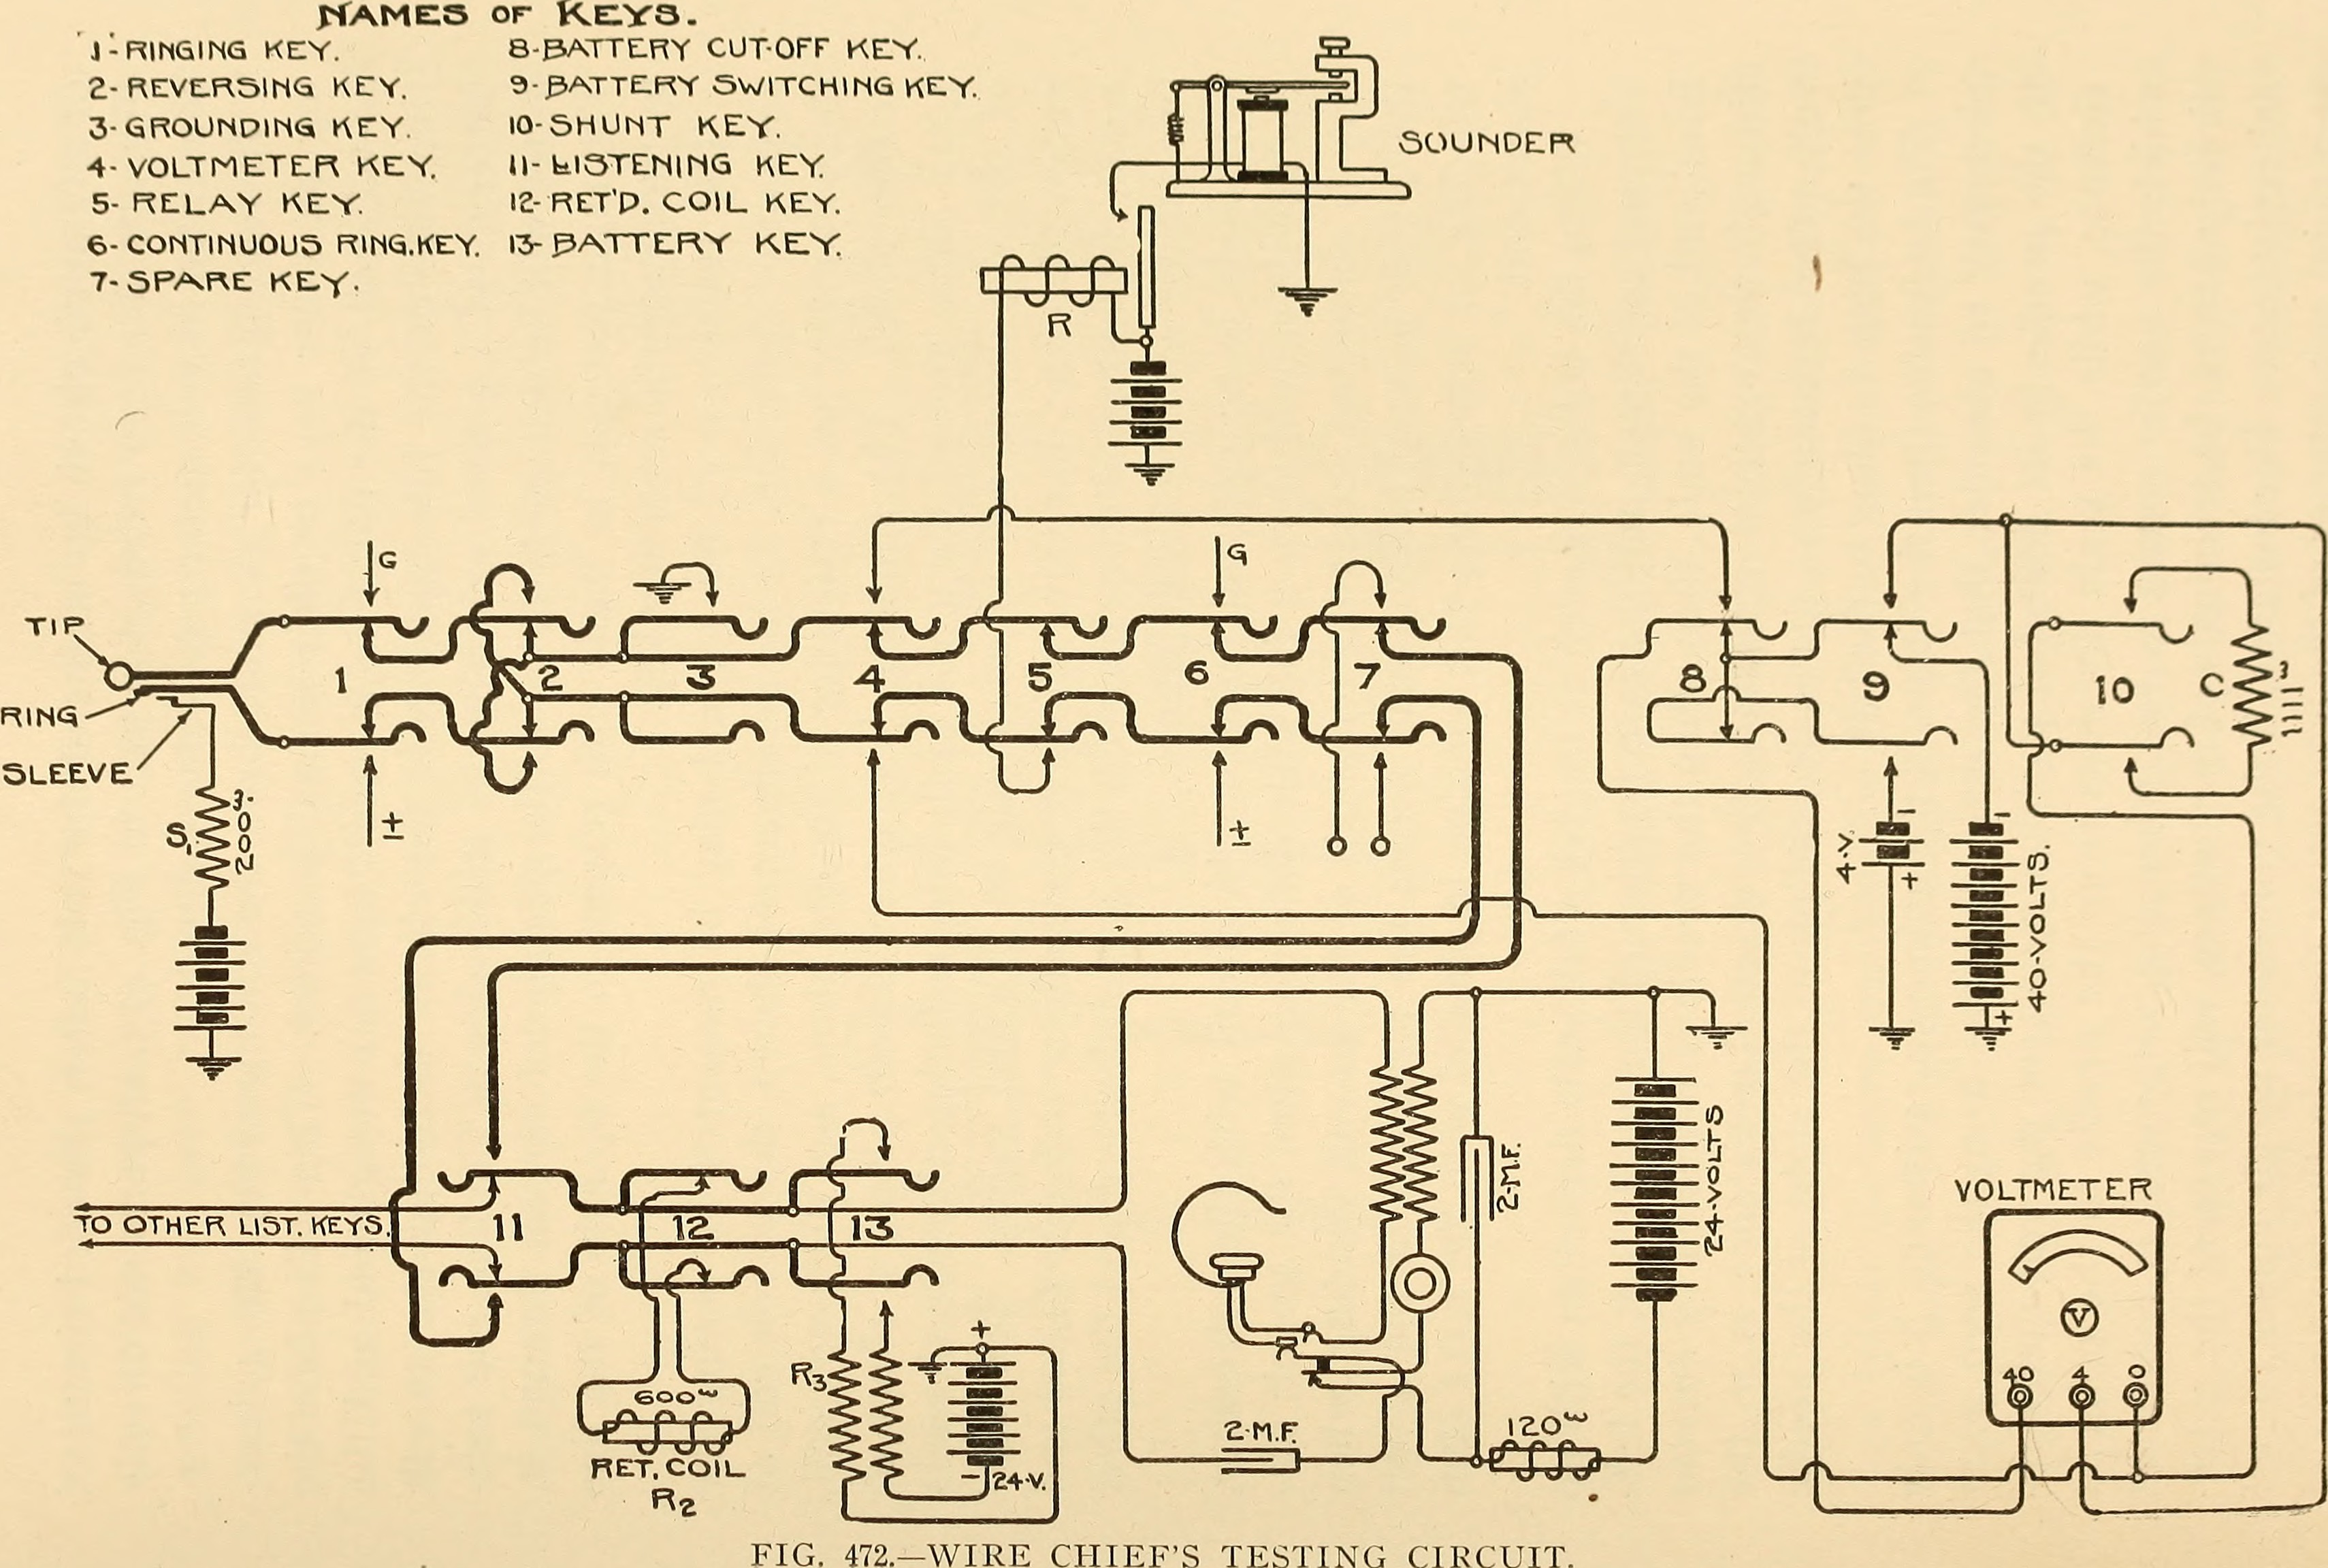 Relay Testing Circuit Diagram Fileamerican Telephone Practice 1905 14569741149